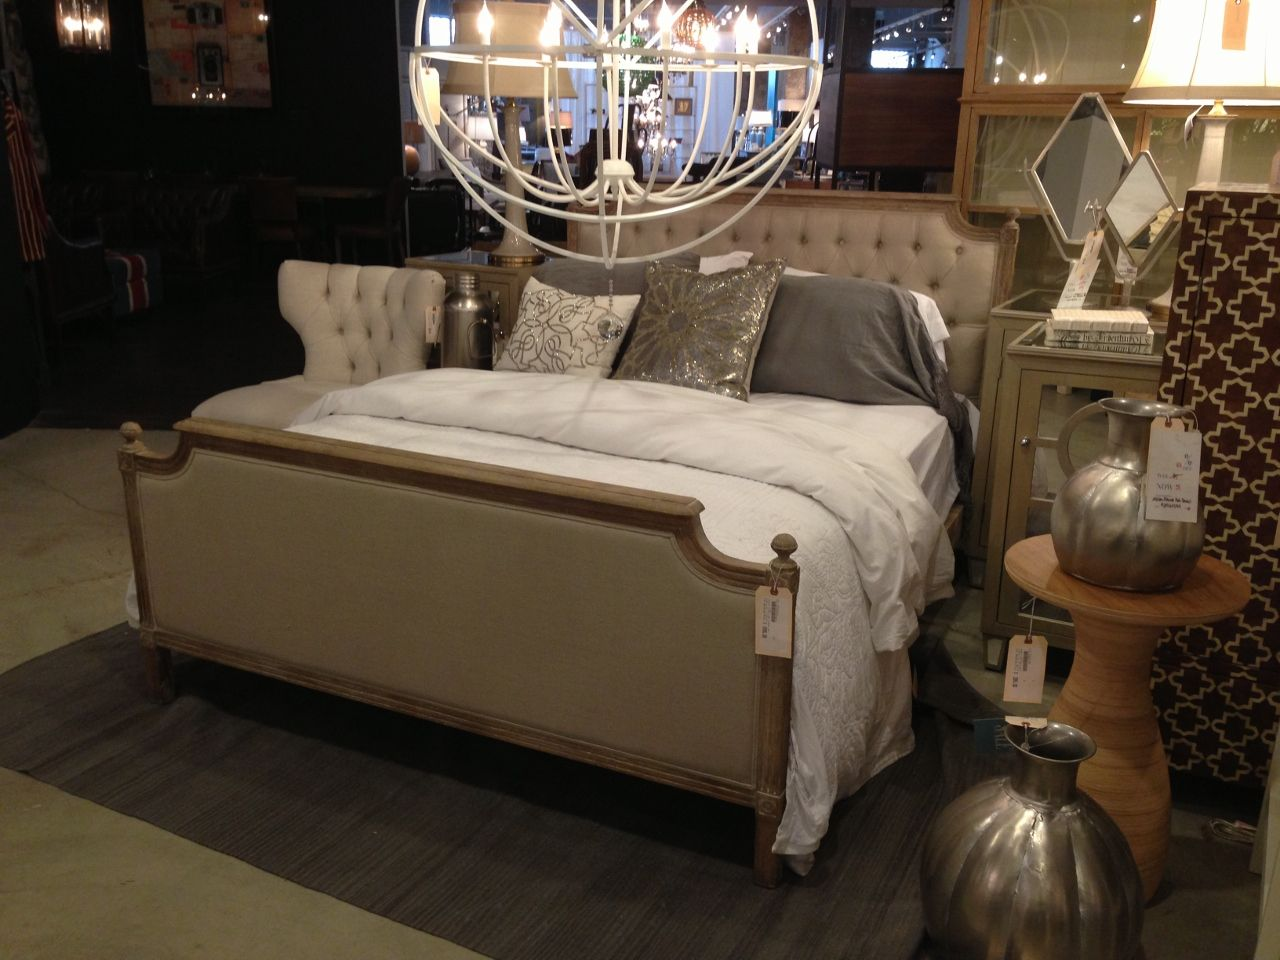 wood and upholstered beds. Upholstered, Wood-frame Bed. Wood And Upholstered Beds